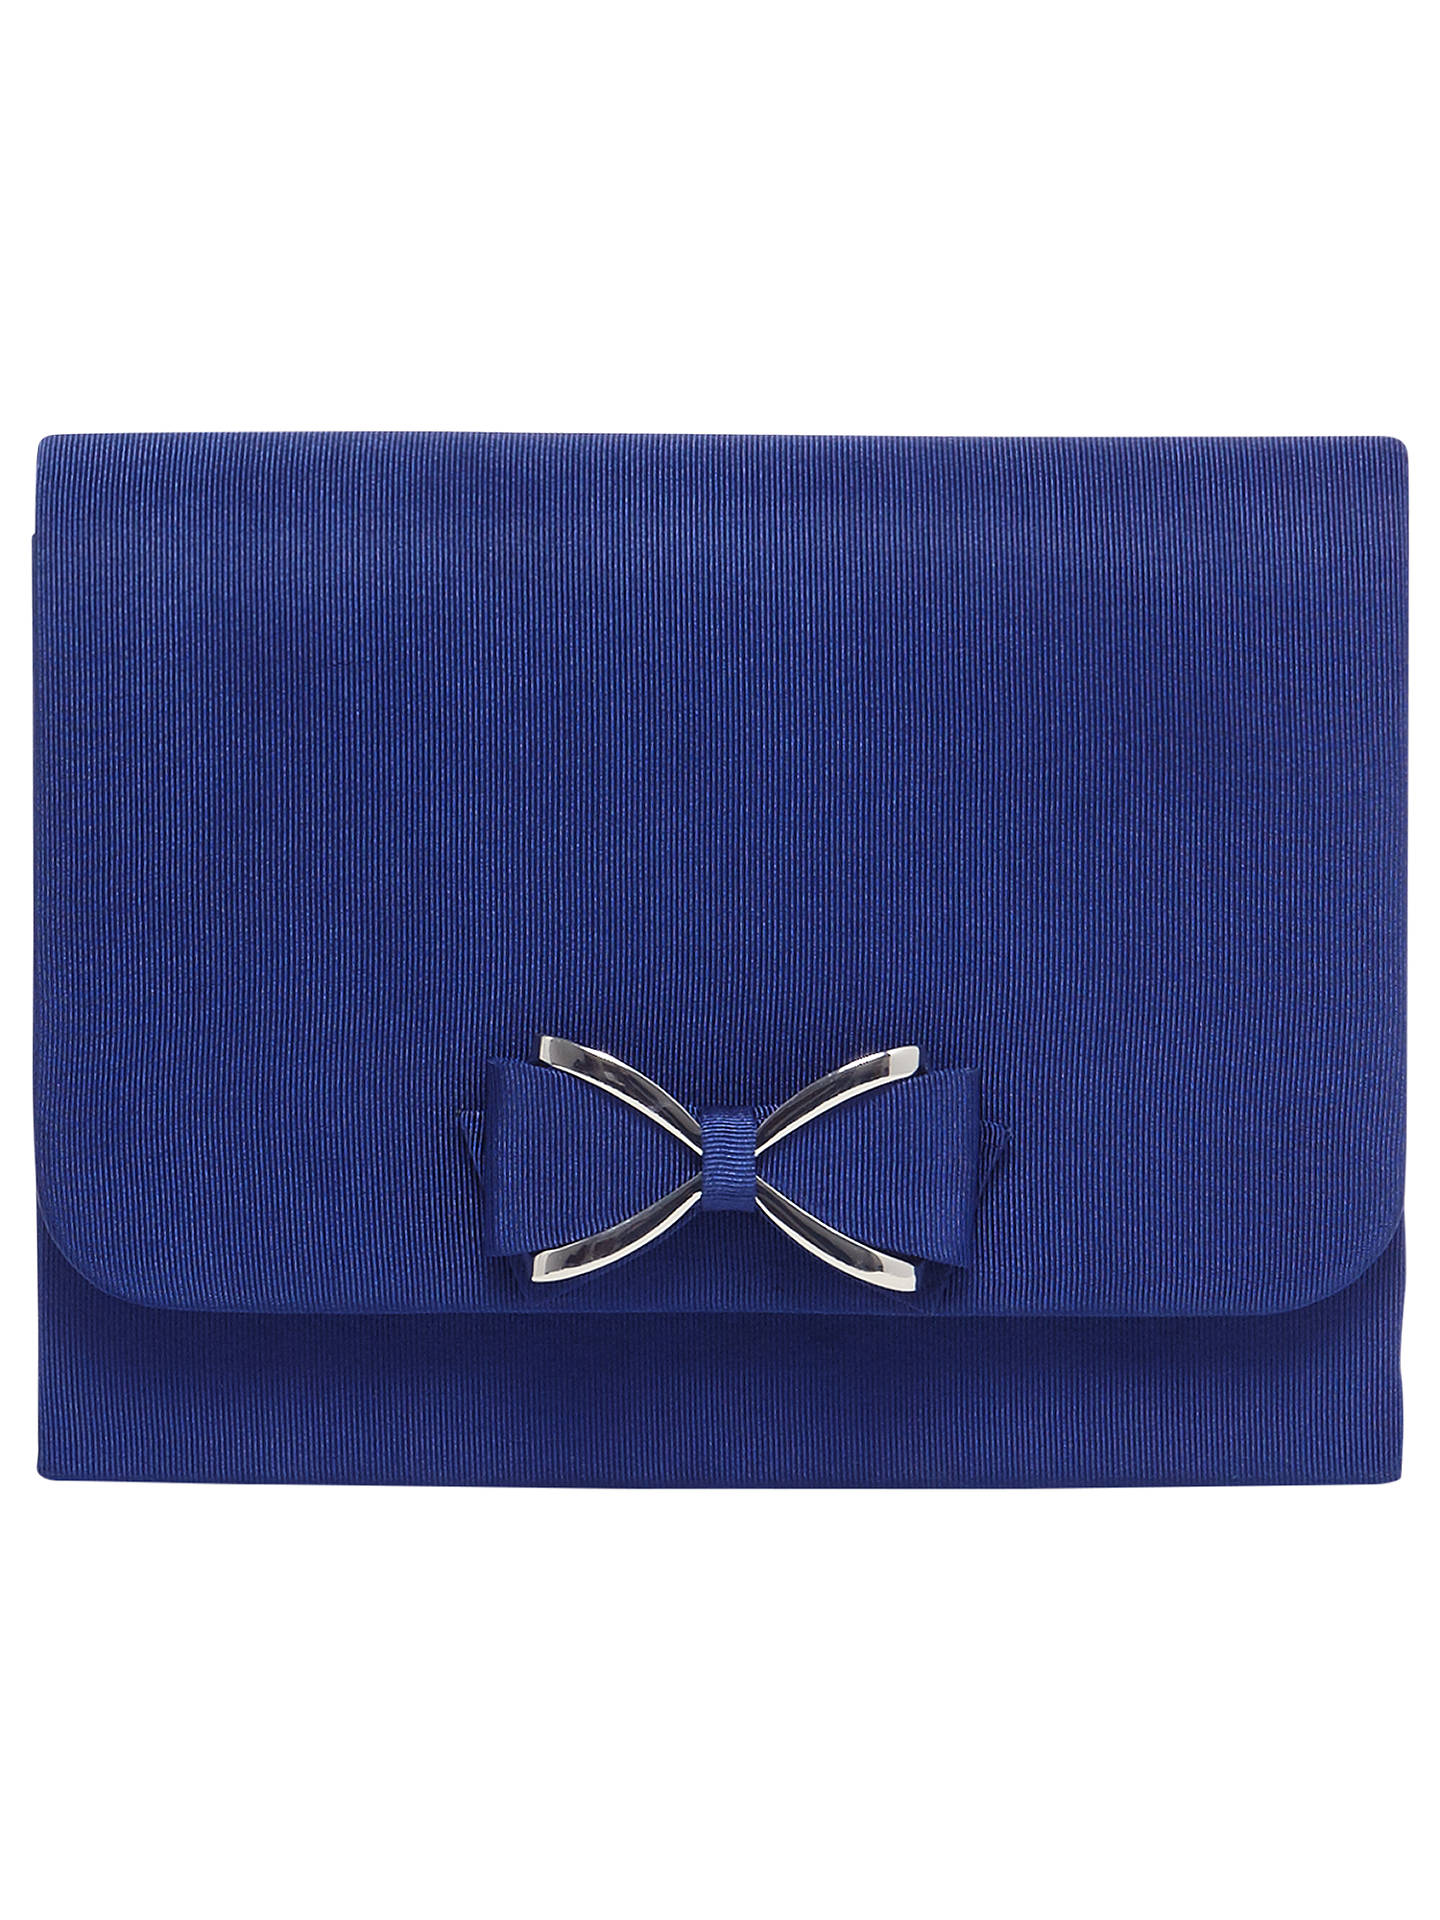 b92760dff66aef Buy Phase Eight Amelia Bow Front Clutch Bag, Sapphire Blue Online at  johnlewis.com ...